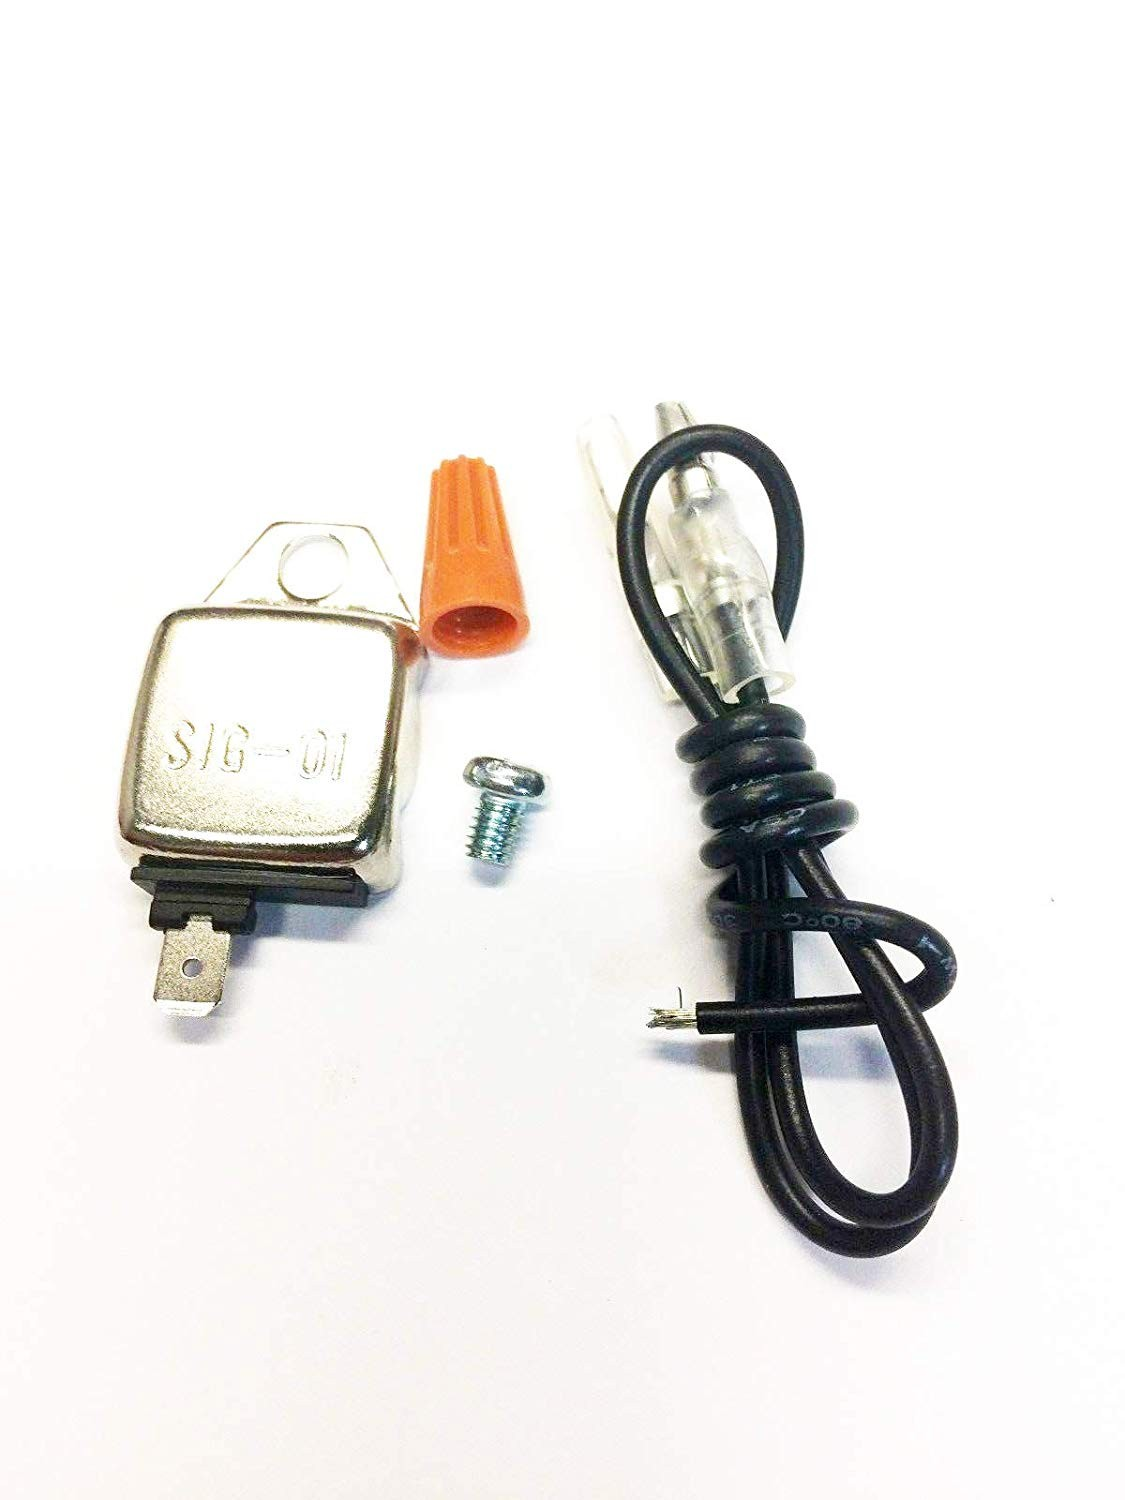 Amazon Stihl 028 020AV 015 & Others Ignition Chip Replaces Points & Condenser Garden & Outdoor